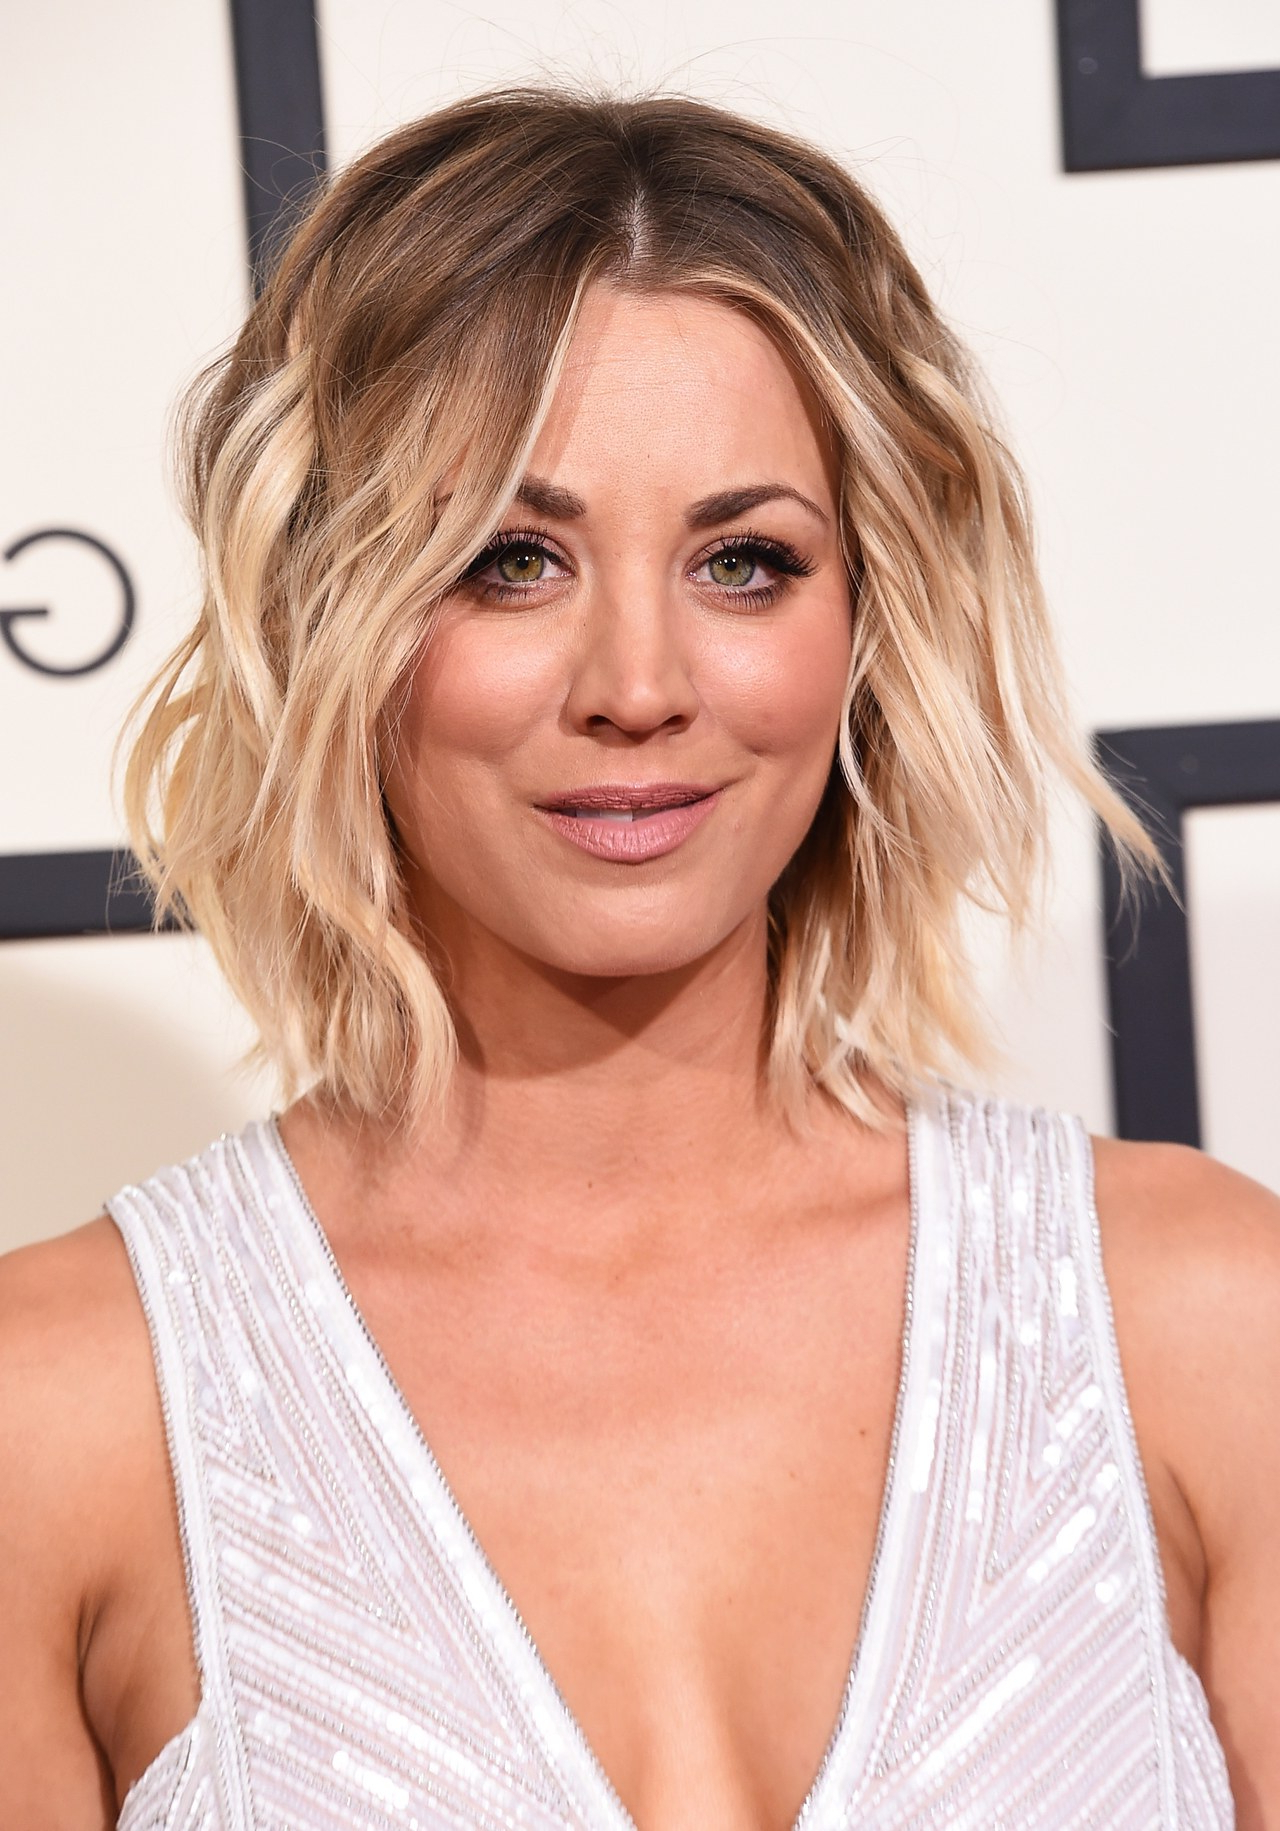 Kaley Cuoco Hair Evolution: See How She Grew Out Her Pixie | Glamour For Kaley Cuoco Short Hairstyles (View 2 of 25)